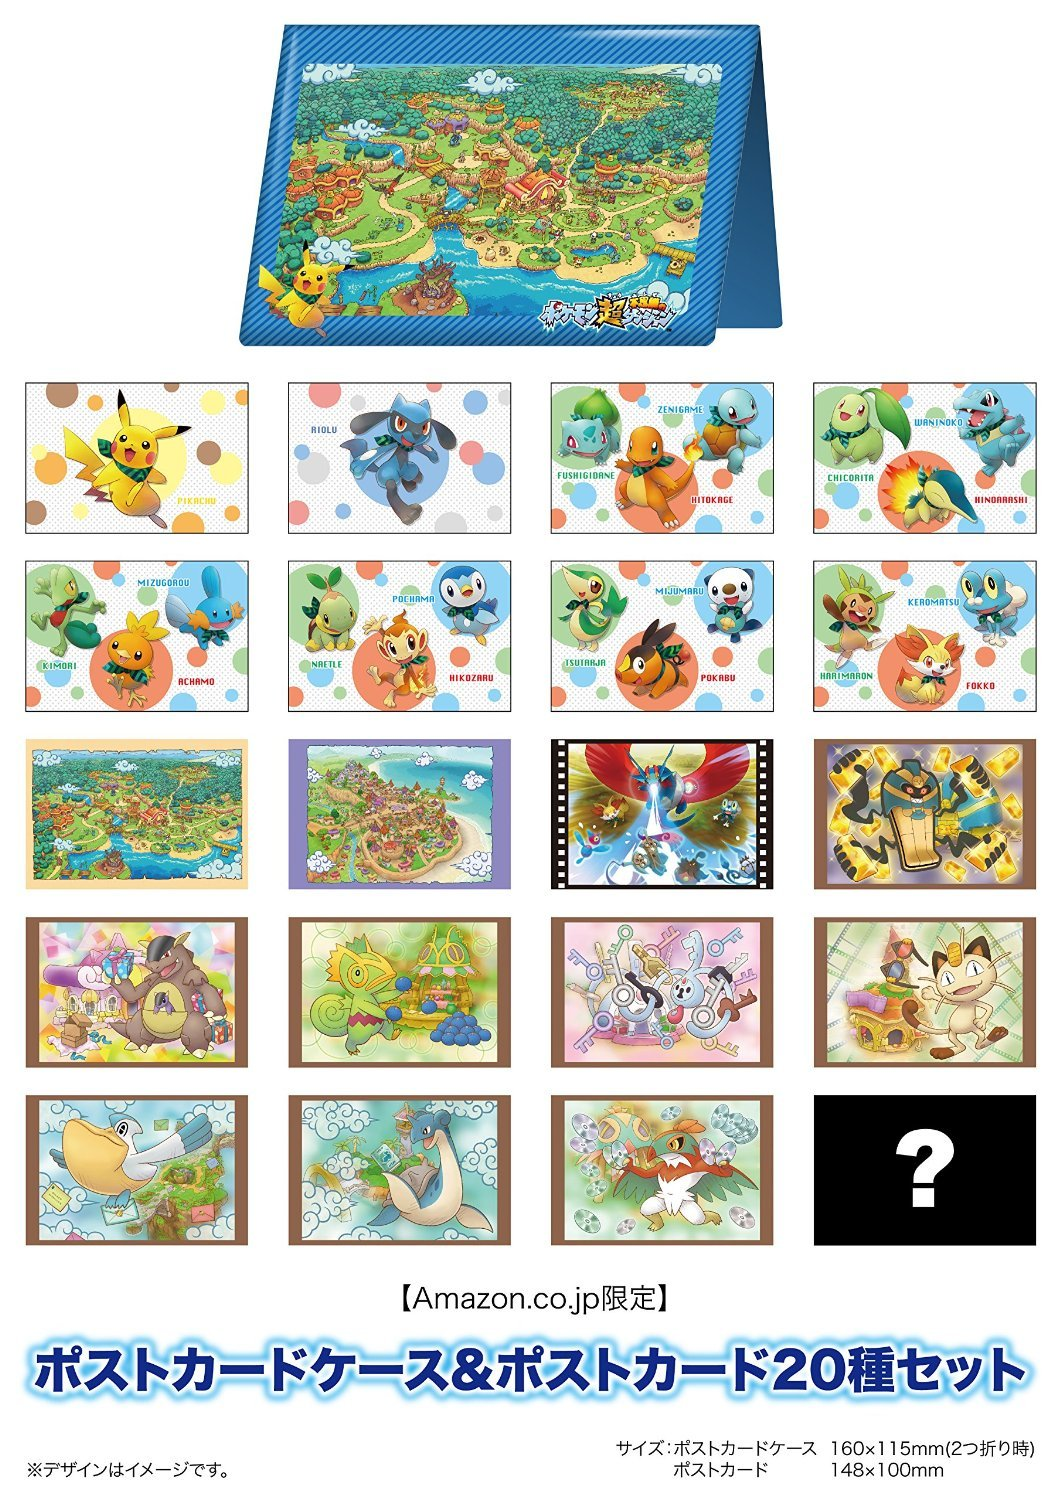 cartoline_super_mystery_dungeon_pokemontimes-it